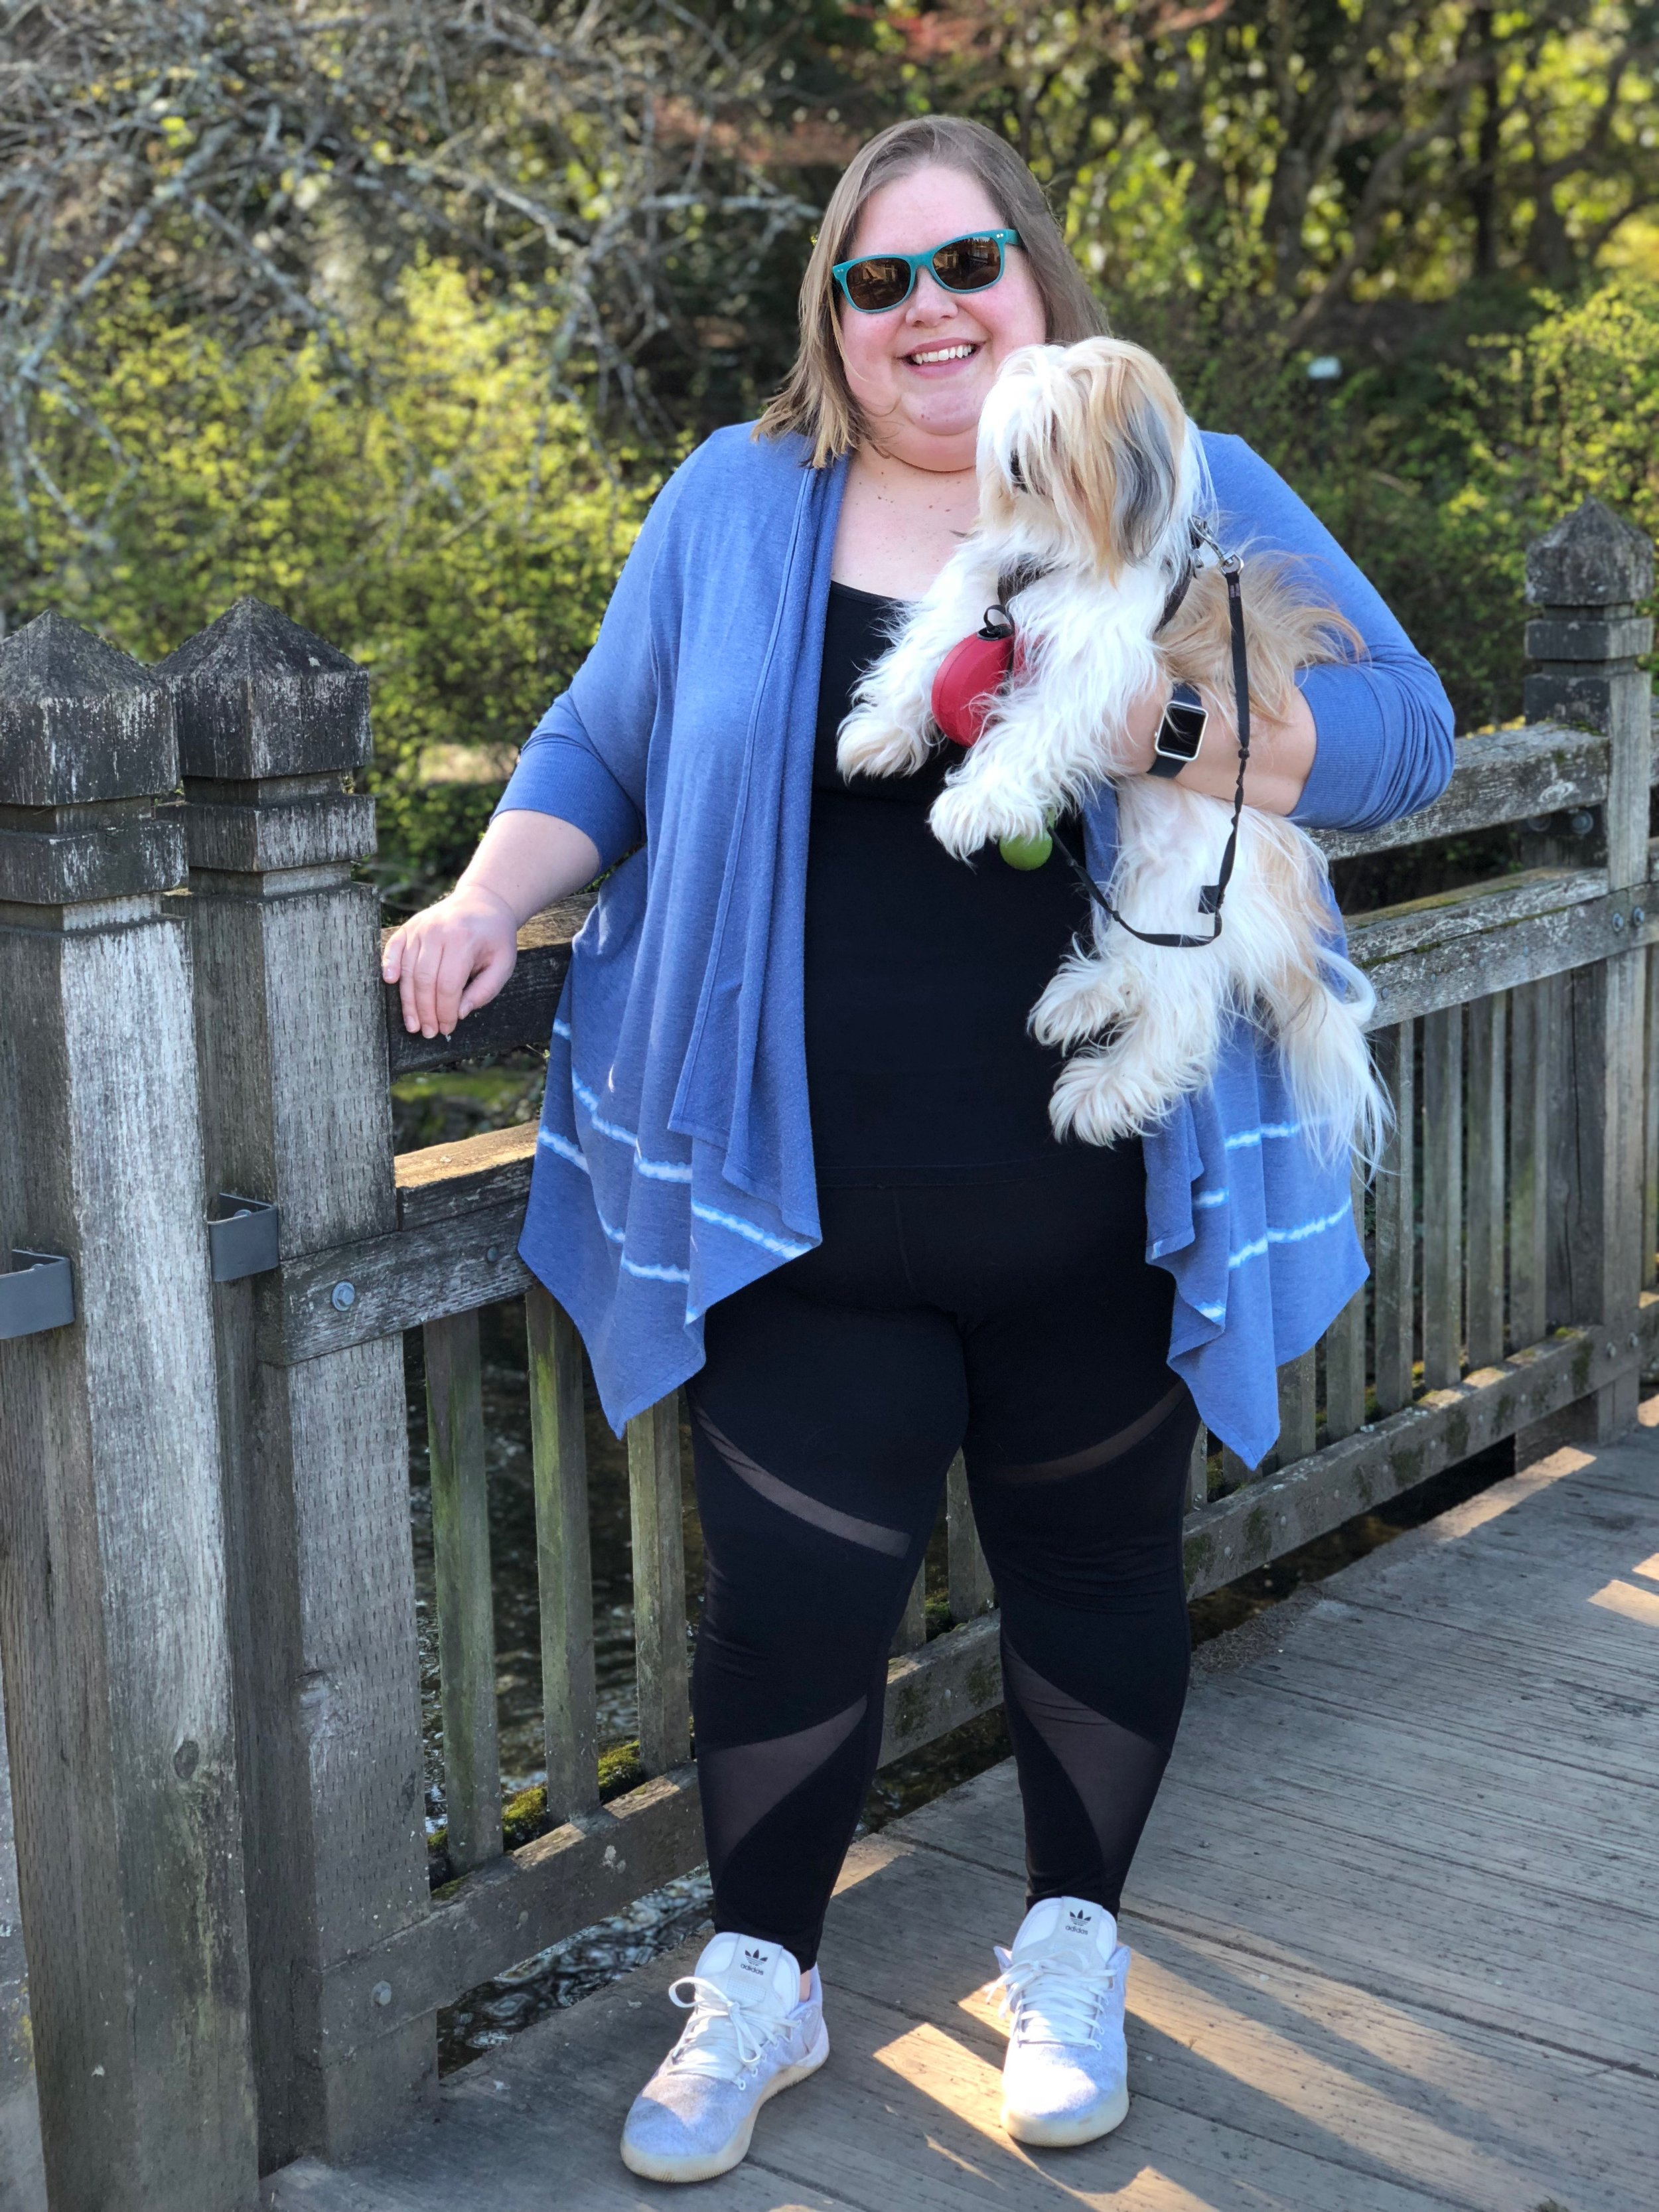 A lifelong Oregonian, Rebecca was born and raised in Southern Oregon, lived in Salem while attending college at Willamette University and moved to Portland in 2011. Her Lhasa Apso Lucy is her pride and joy. Learn more about Rebecca  here  OR find her on Twitter at @portlandrebecca or--more importantly--find Lucy on Instagram at @lhasalucy.